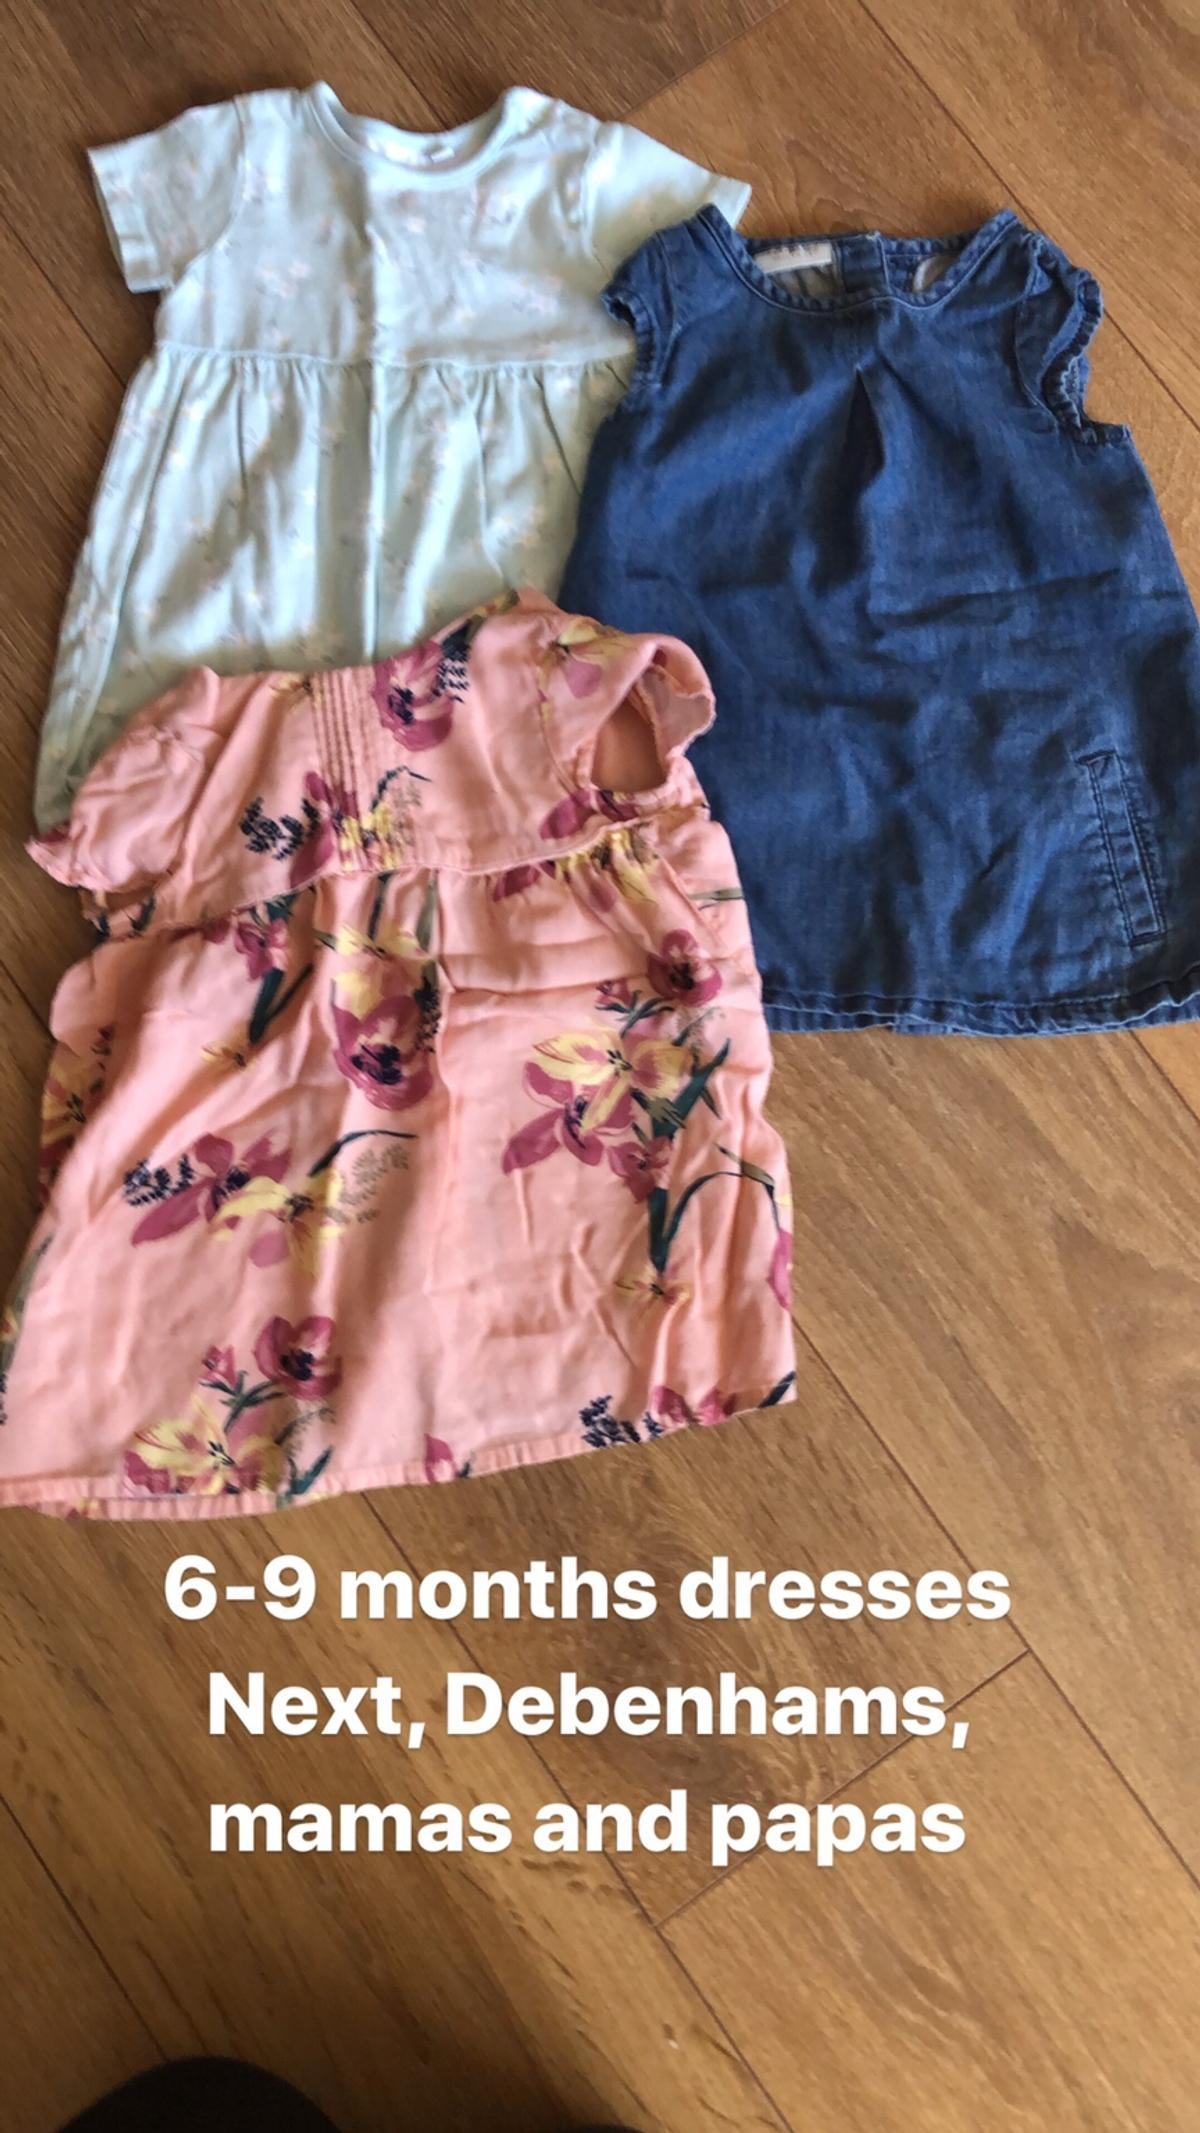 Click image to see full description and sizes 😊 Open to offers and happy to sell items separately